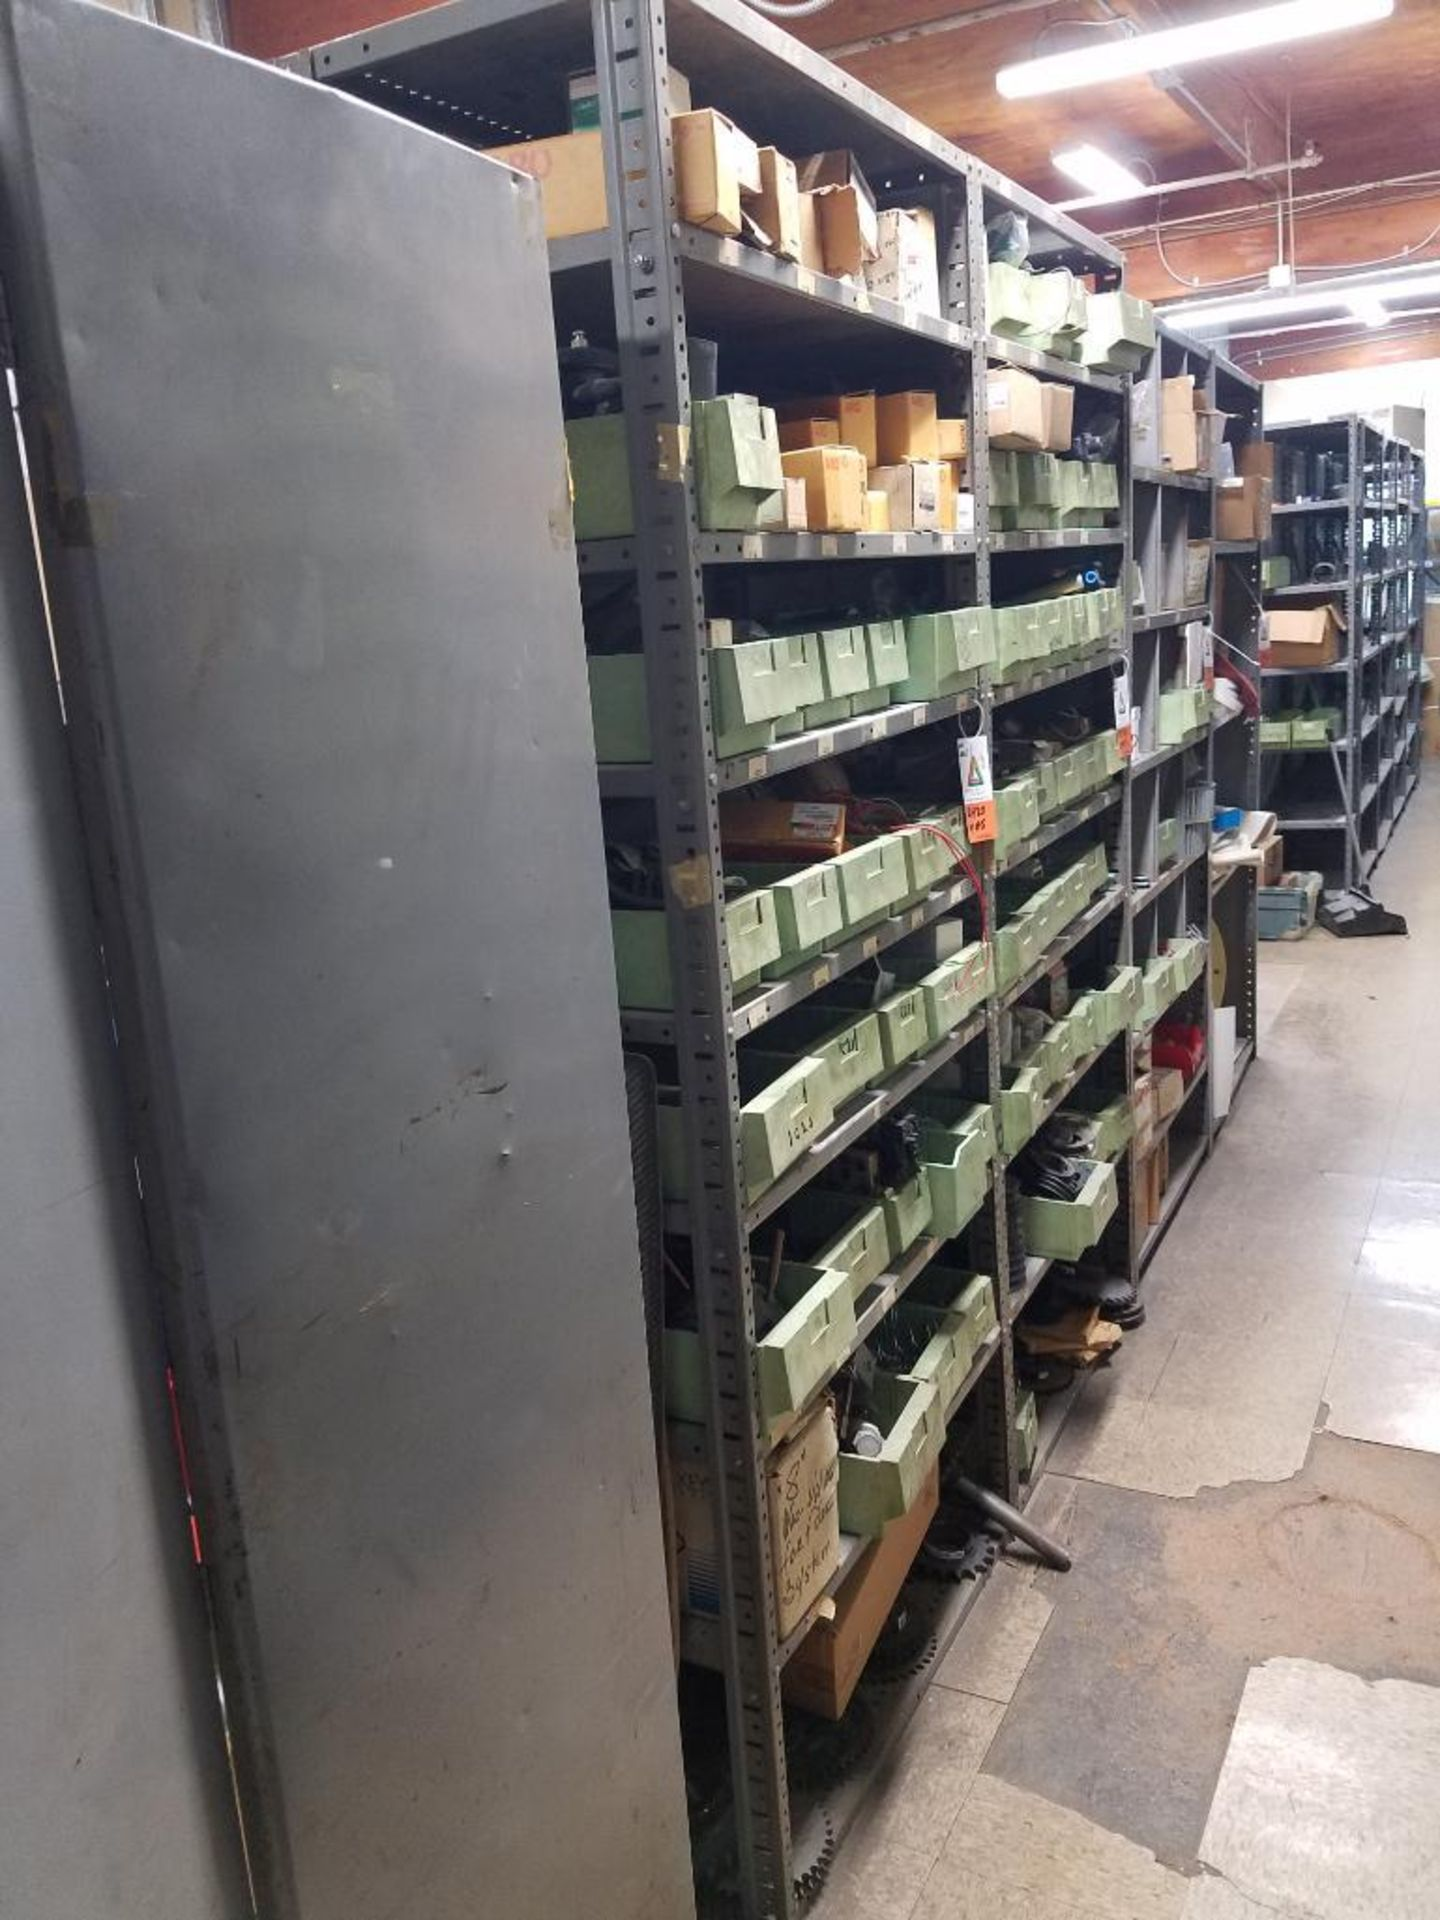 various replacement parts, conveyor belts, electrical components, gears and gauges - Image 2 of 21